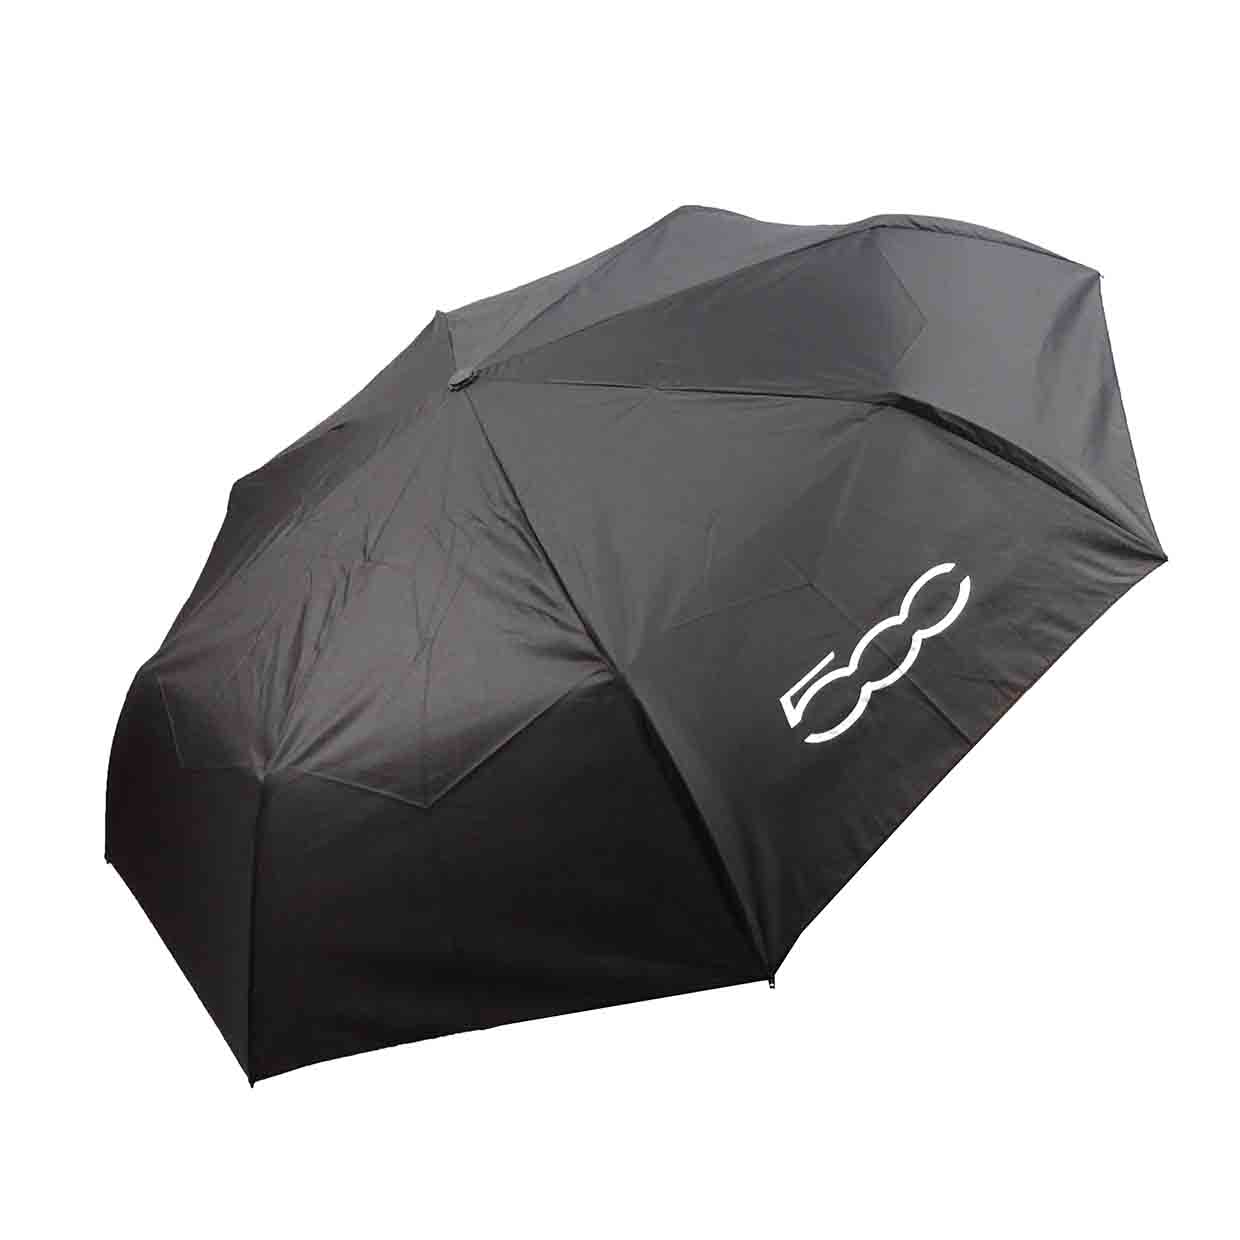 FOR FIAT 500 500L Car Umbrella Accessories Gift  For Fiat 500 500L 500S fiat abarth Vehicle Umbrella  Auto accessories